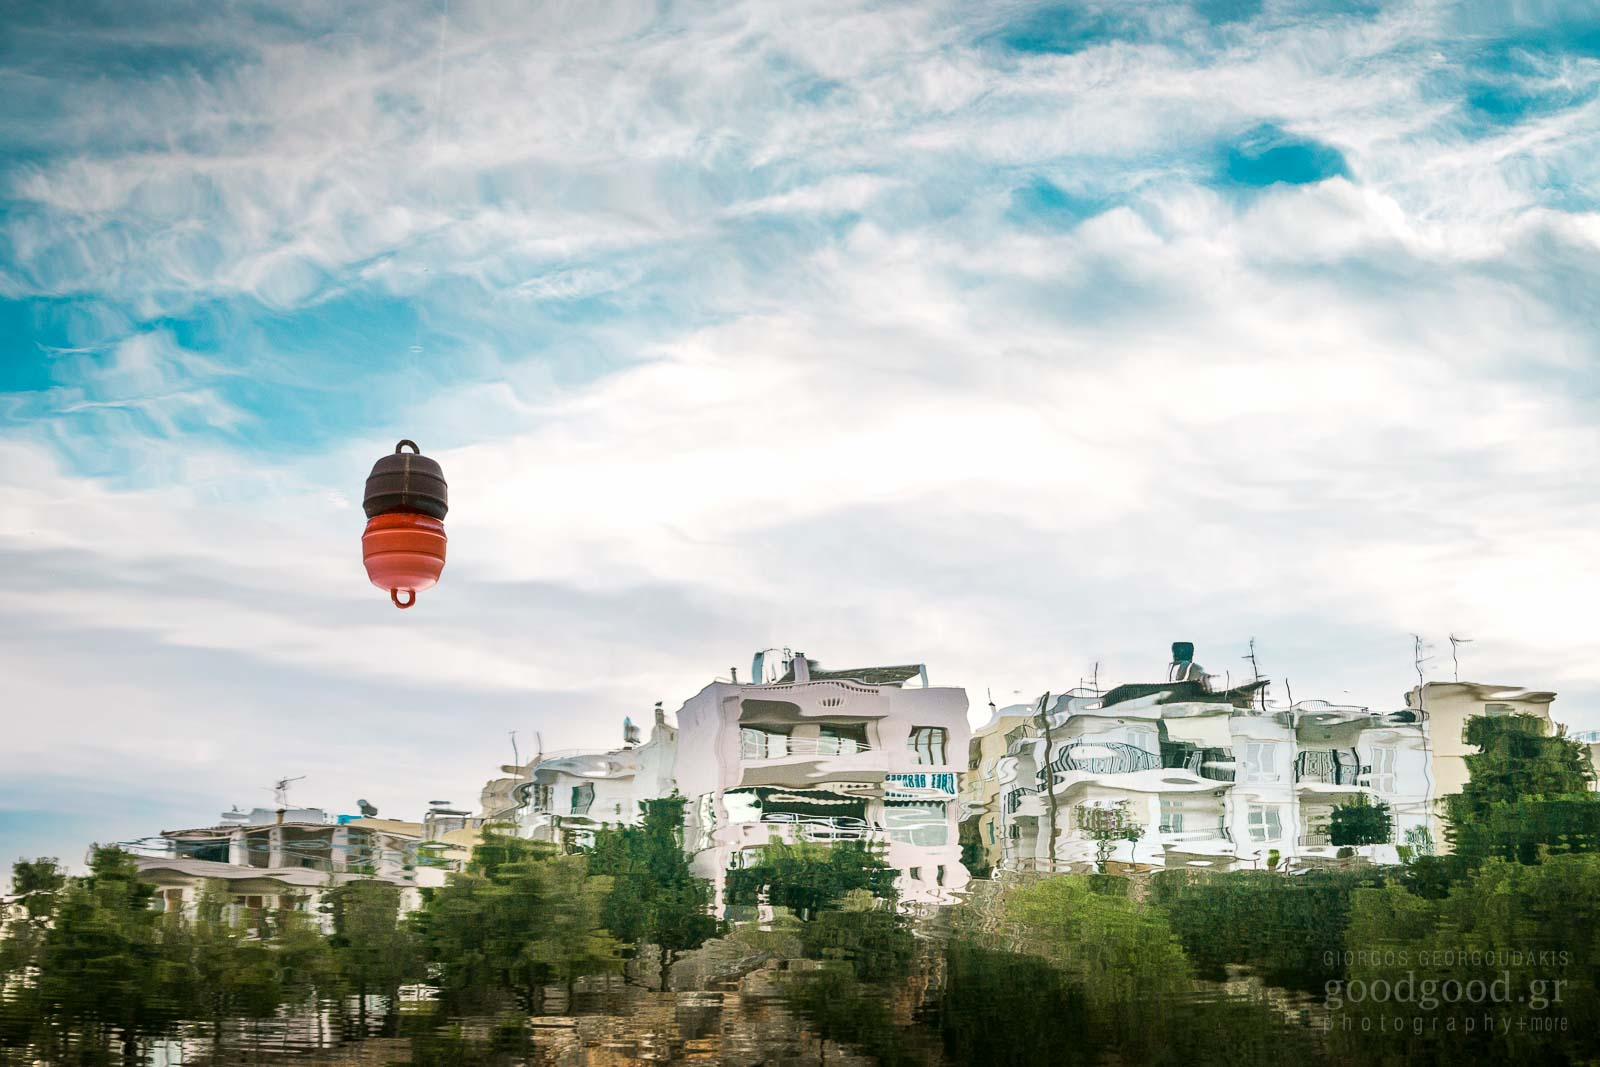 Photo of houses reflection on the water on the lake of Agios Nikolaos near a buoy